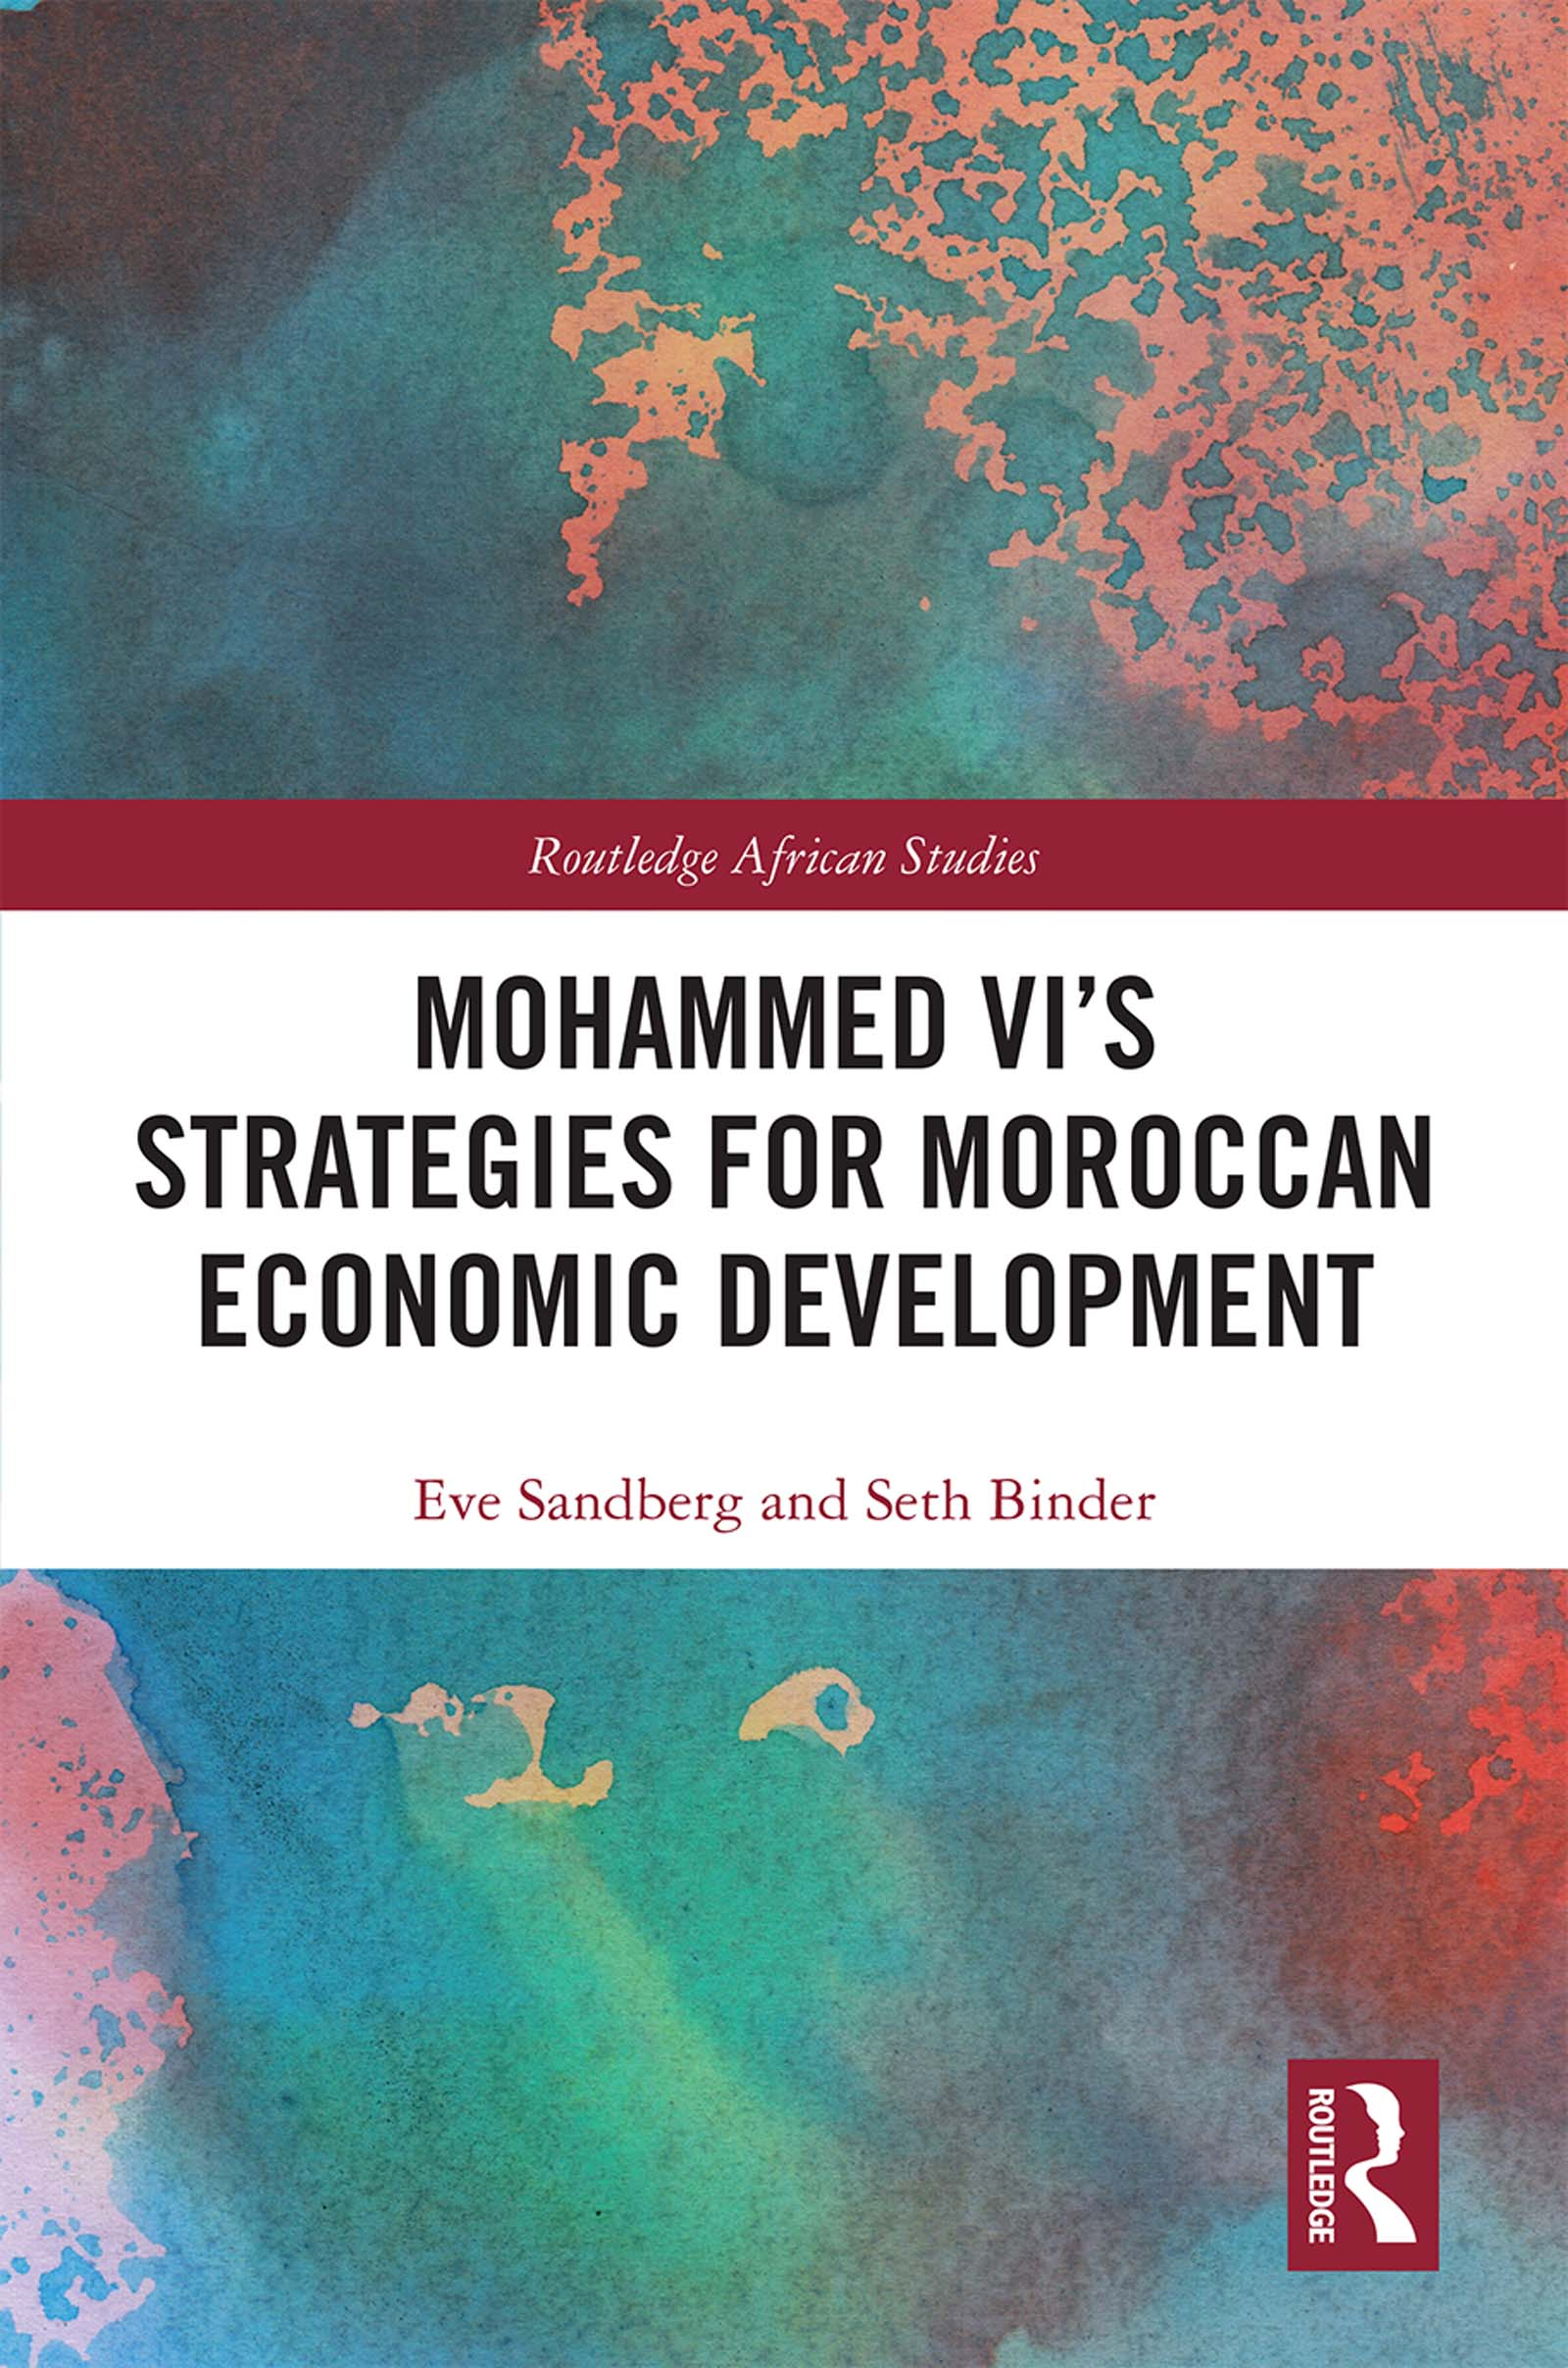 Mohammed VI's Strategies for Moroccan Economic Development book cover